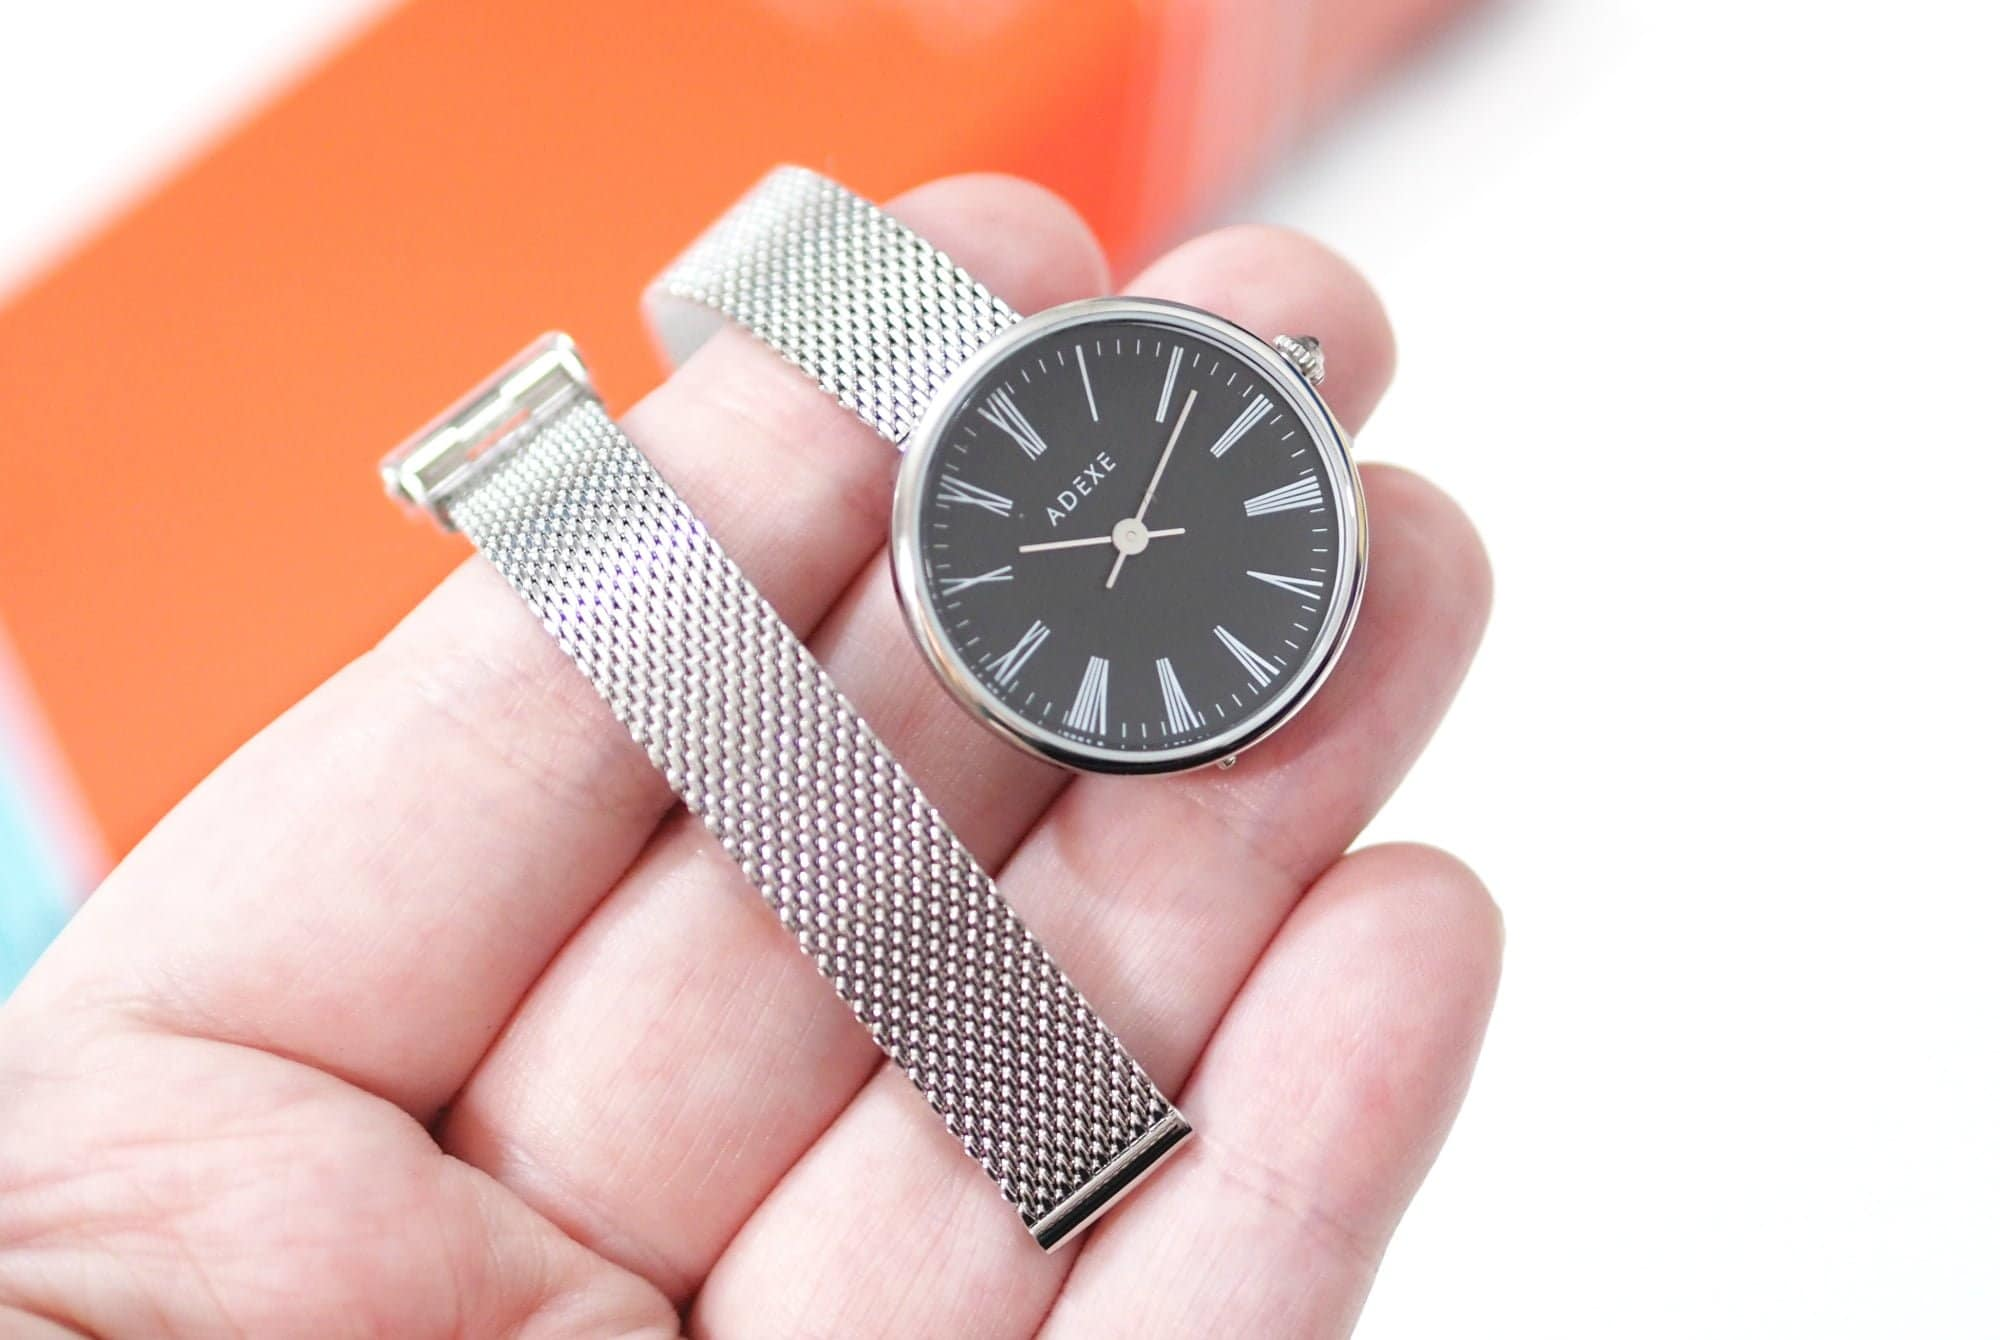 Adexe Mini Sistine Watch PLUS Giveaway!